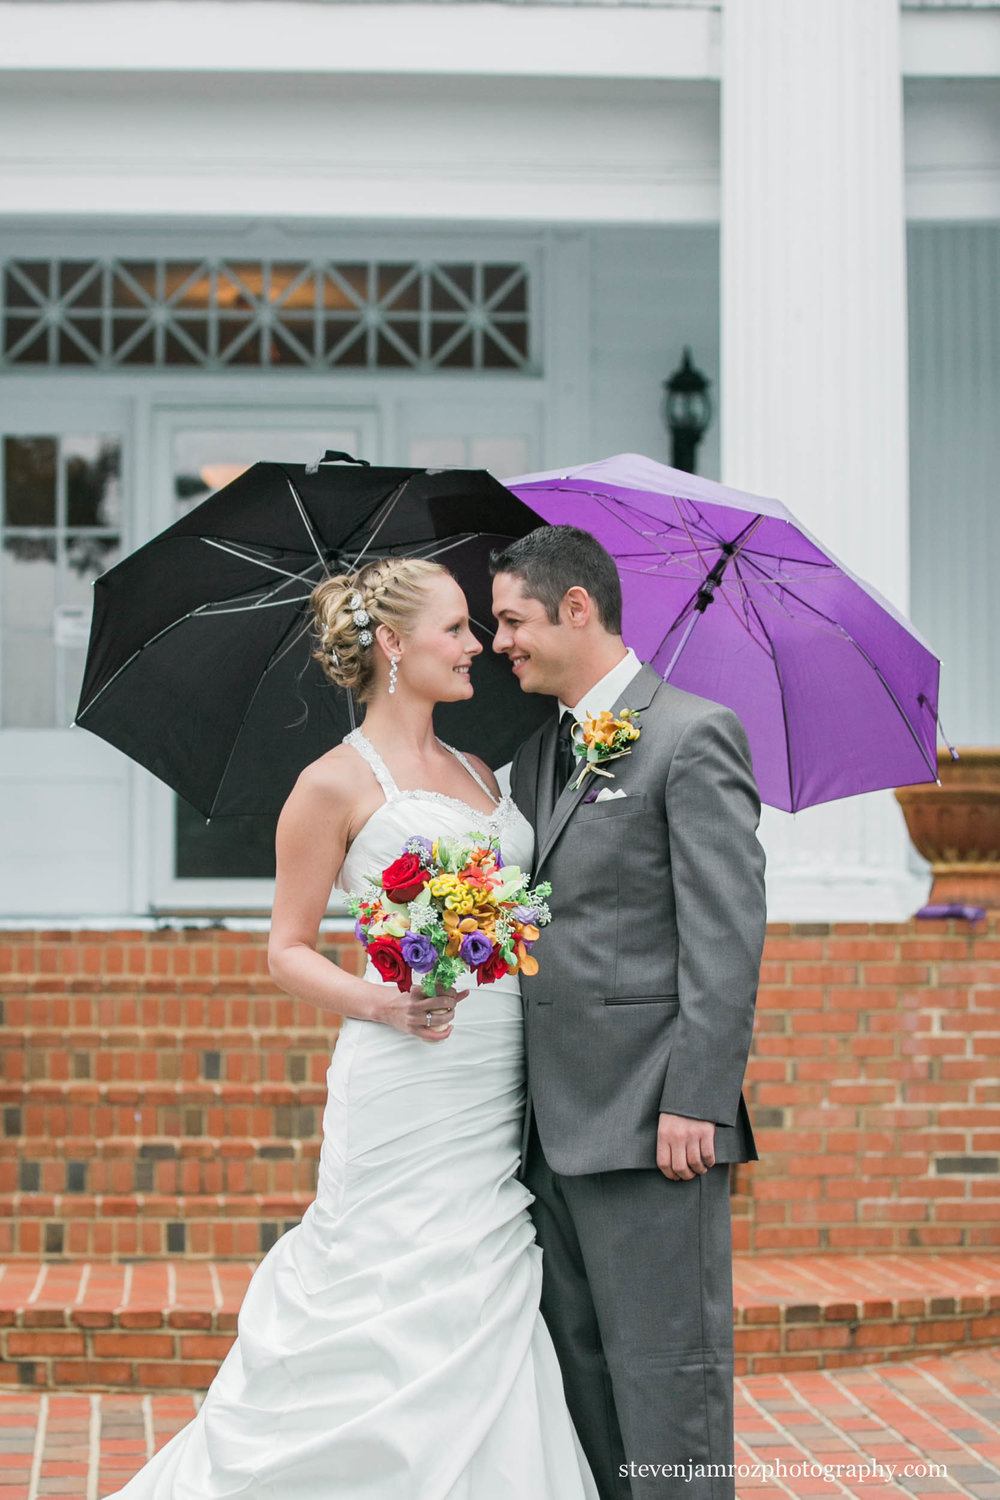 rain-wedding-hudson-manor-estate-umbrellas-wedding-steven-jamroz-photography-0450.jpg